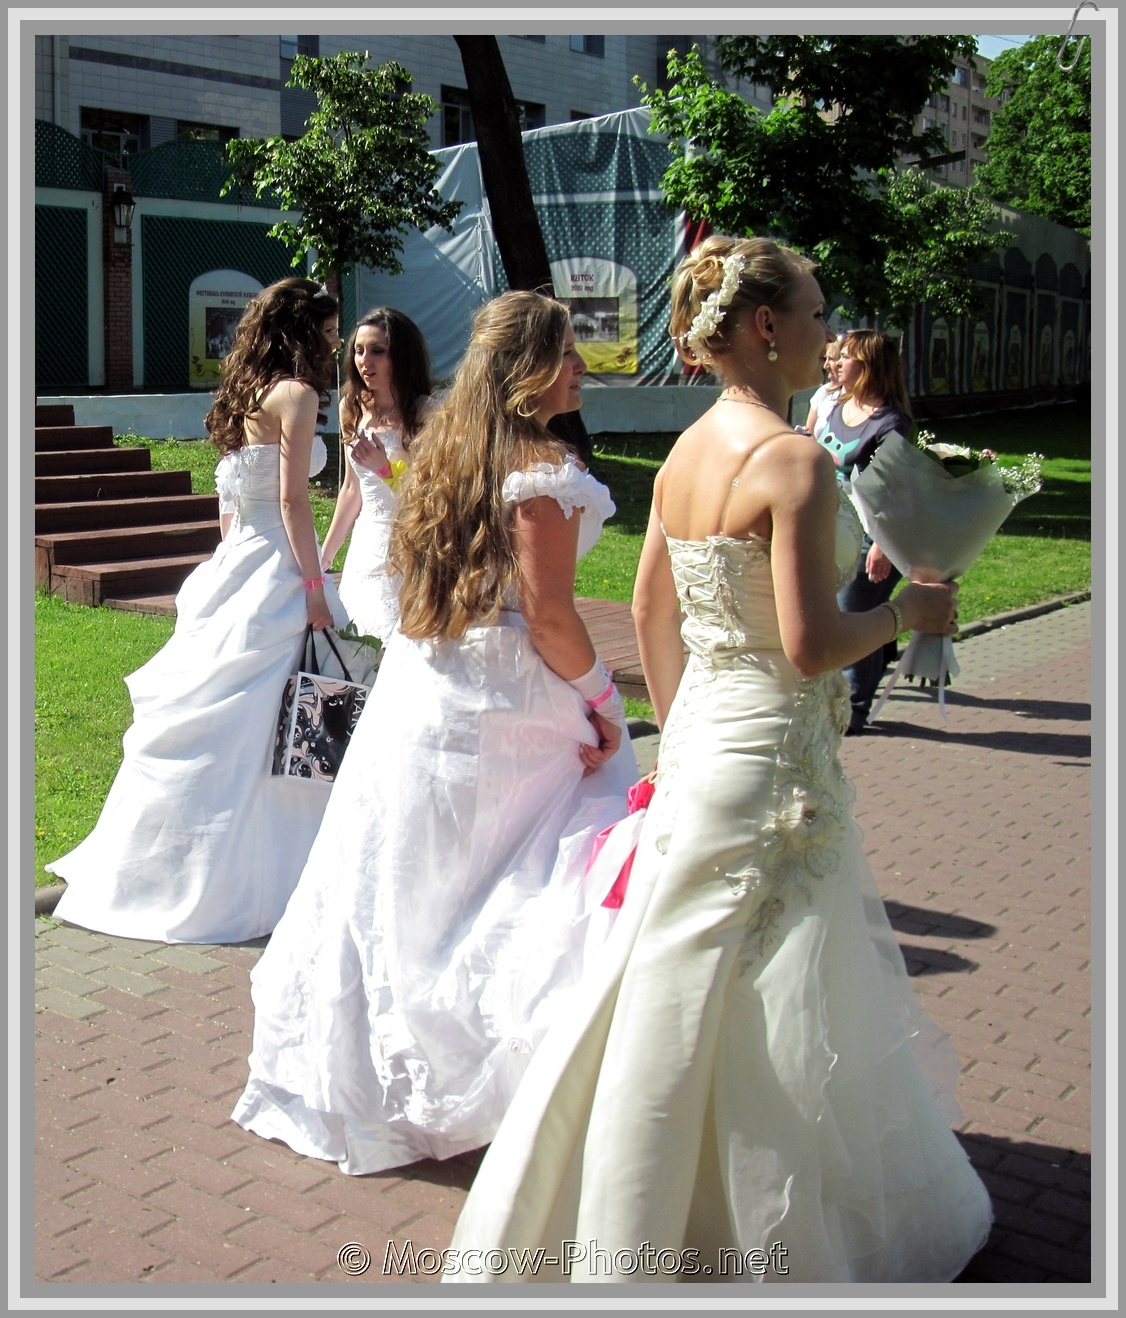 Too much of Russian Runaway Brides